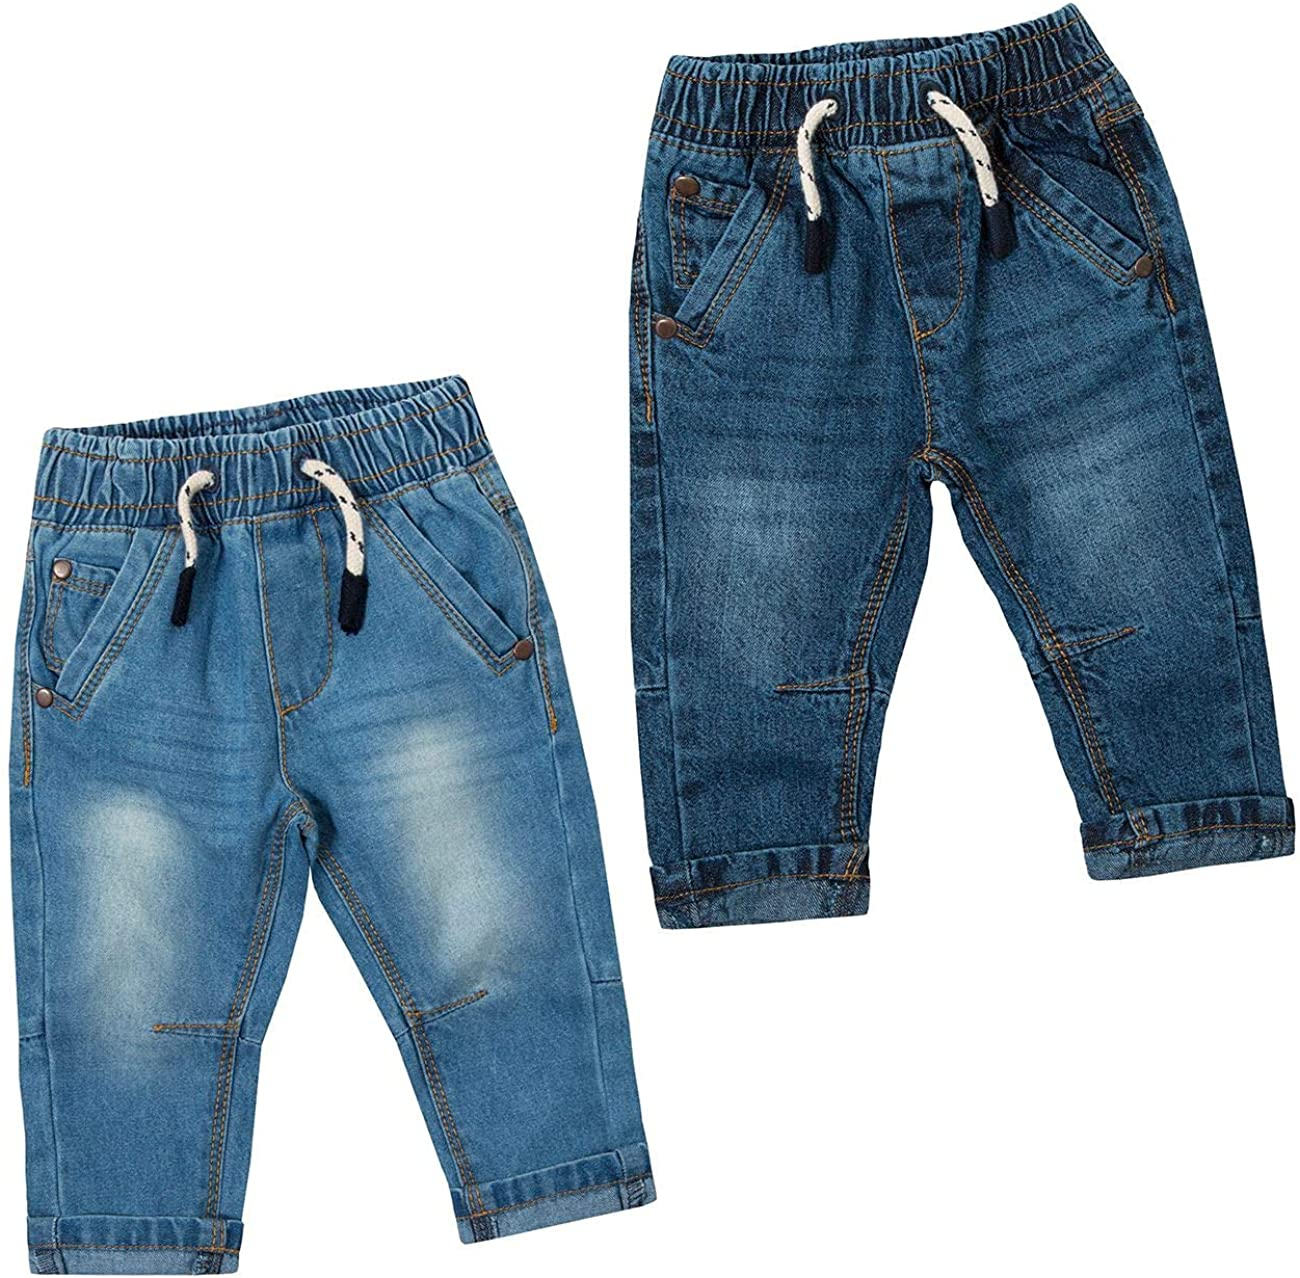 Style It Up Baby Boys Girls Infant Denim Blue Jeans Elastic Waistband Pockets 3-24 Months